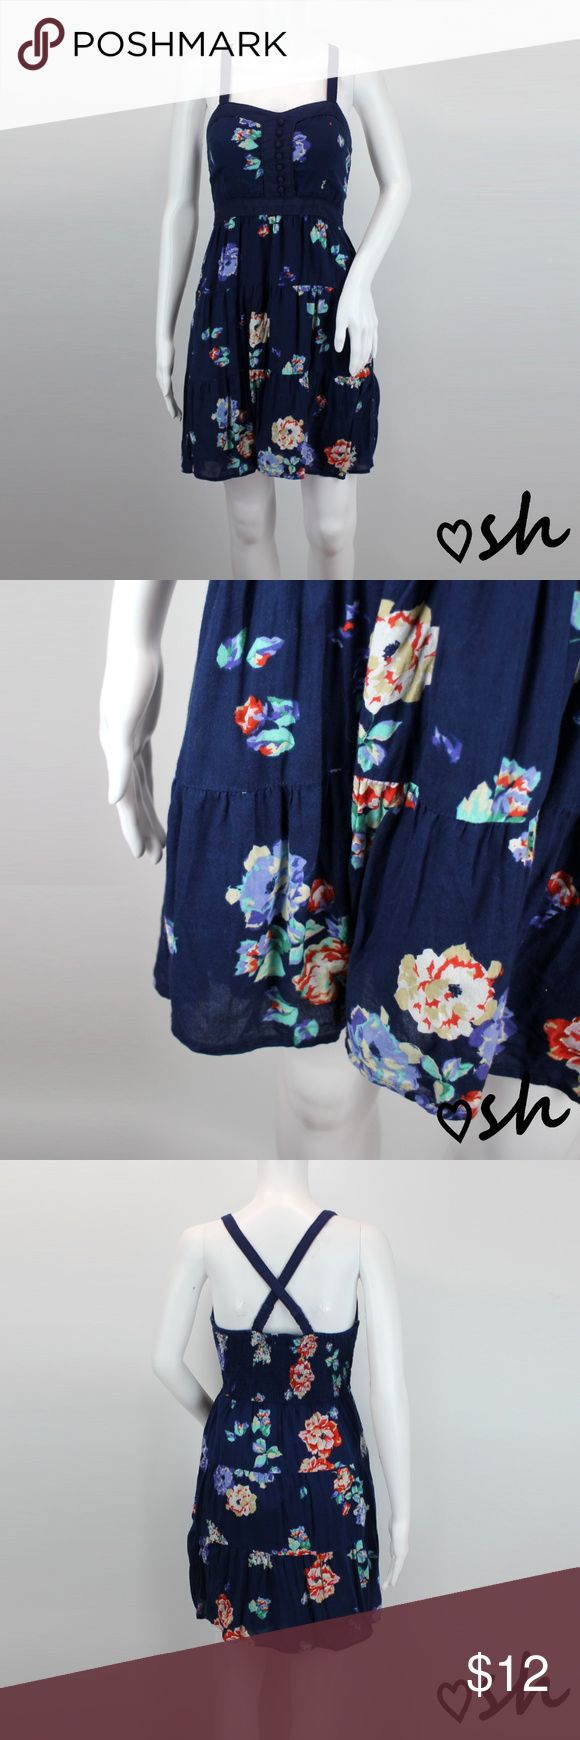 """American Eagle Navy Floral Cotton Sundress - Sz 4 Super cute and comfortable floral sundress from AEO.  It has a tiered skirt, faux buttons on the front, and elastic on the back.  It's made from 100% cotton, and partially lined.  Washing on the gentle cycle is recommended.  It's size 4; however, sizing can vary so please read measurements.  Armpit to armpit unstretched is 14"""" and shoulder to hem is 34"""".  It has been worn, and is a little pilly, but in overall good condition. American Eagle…"""